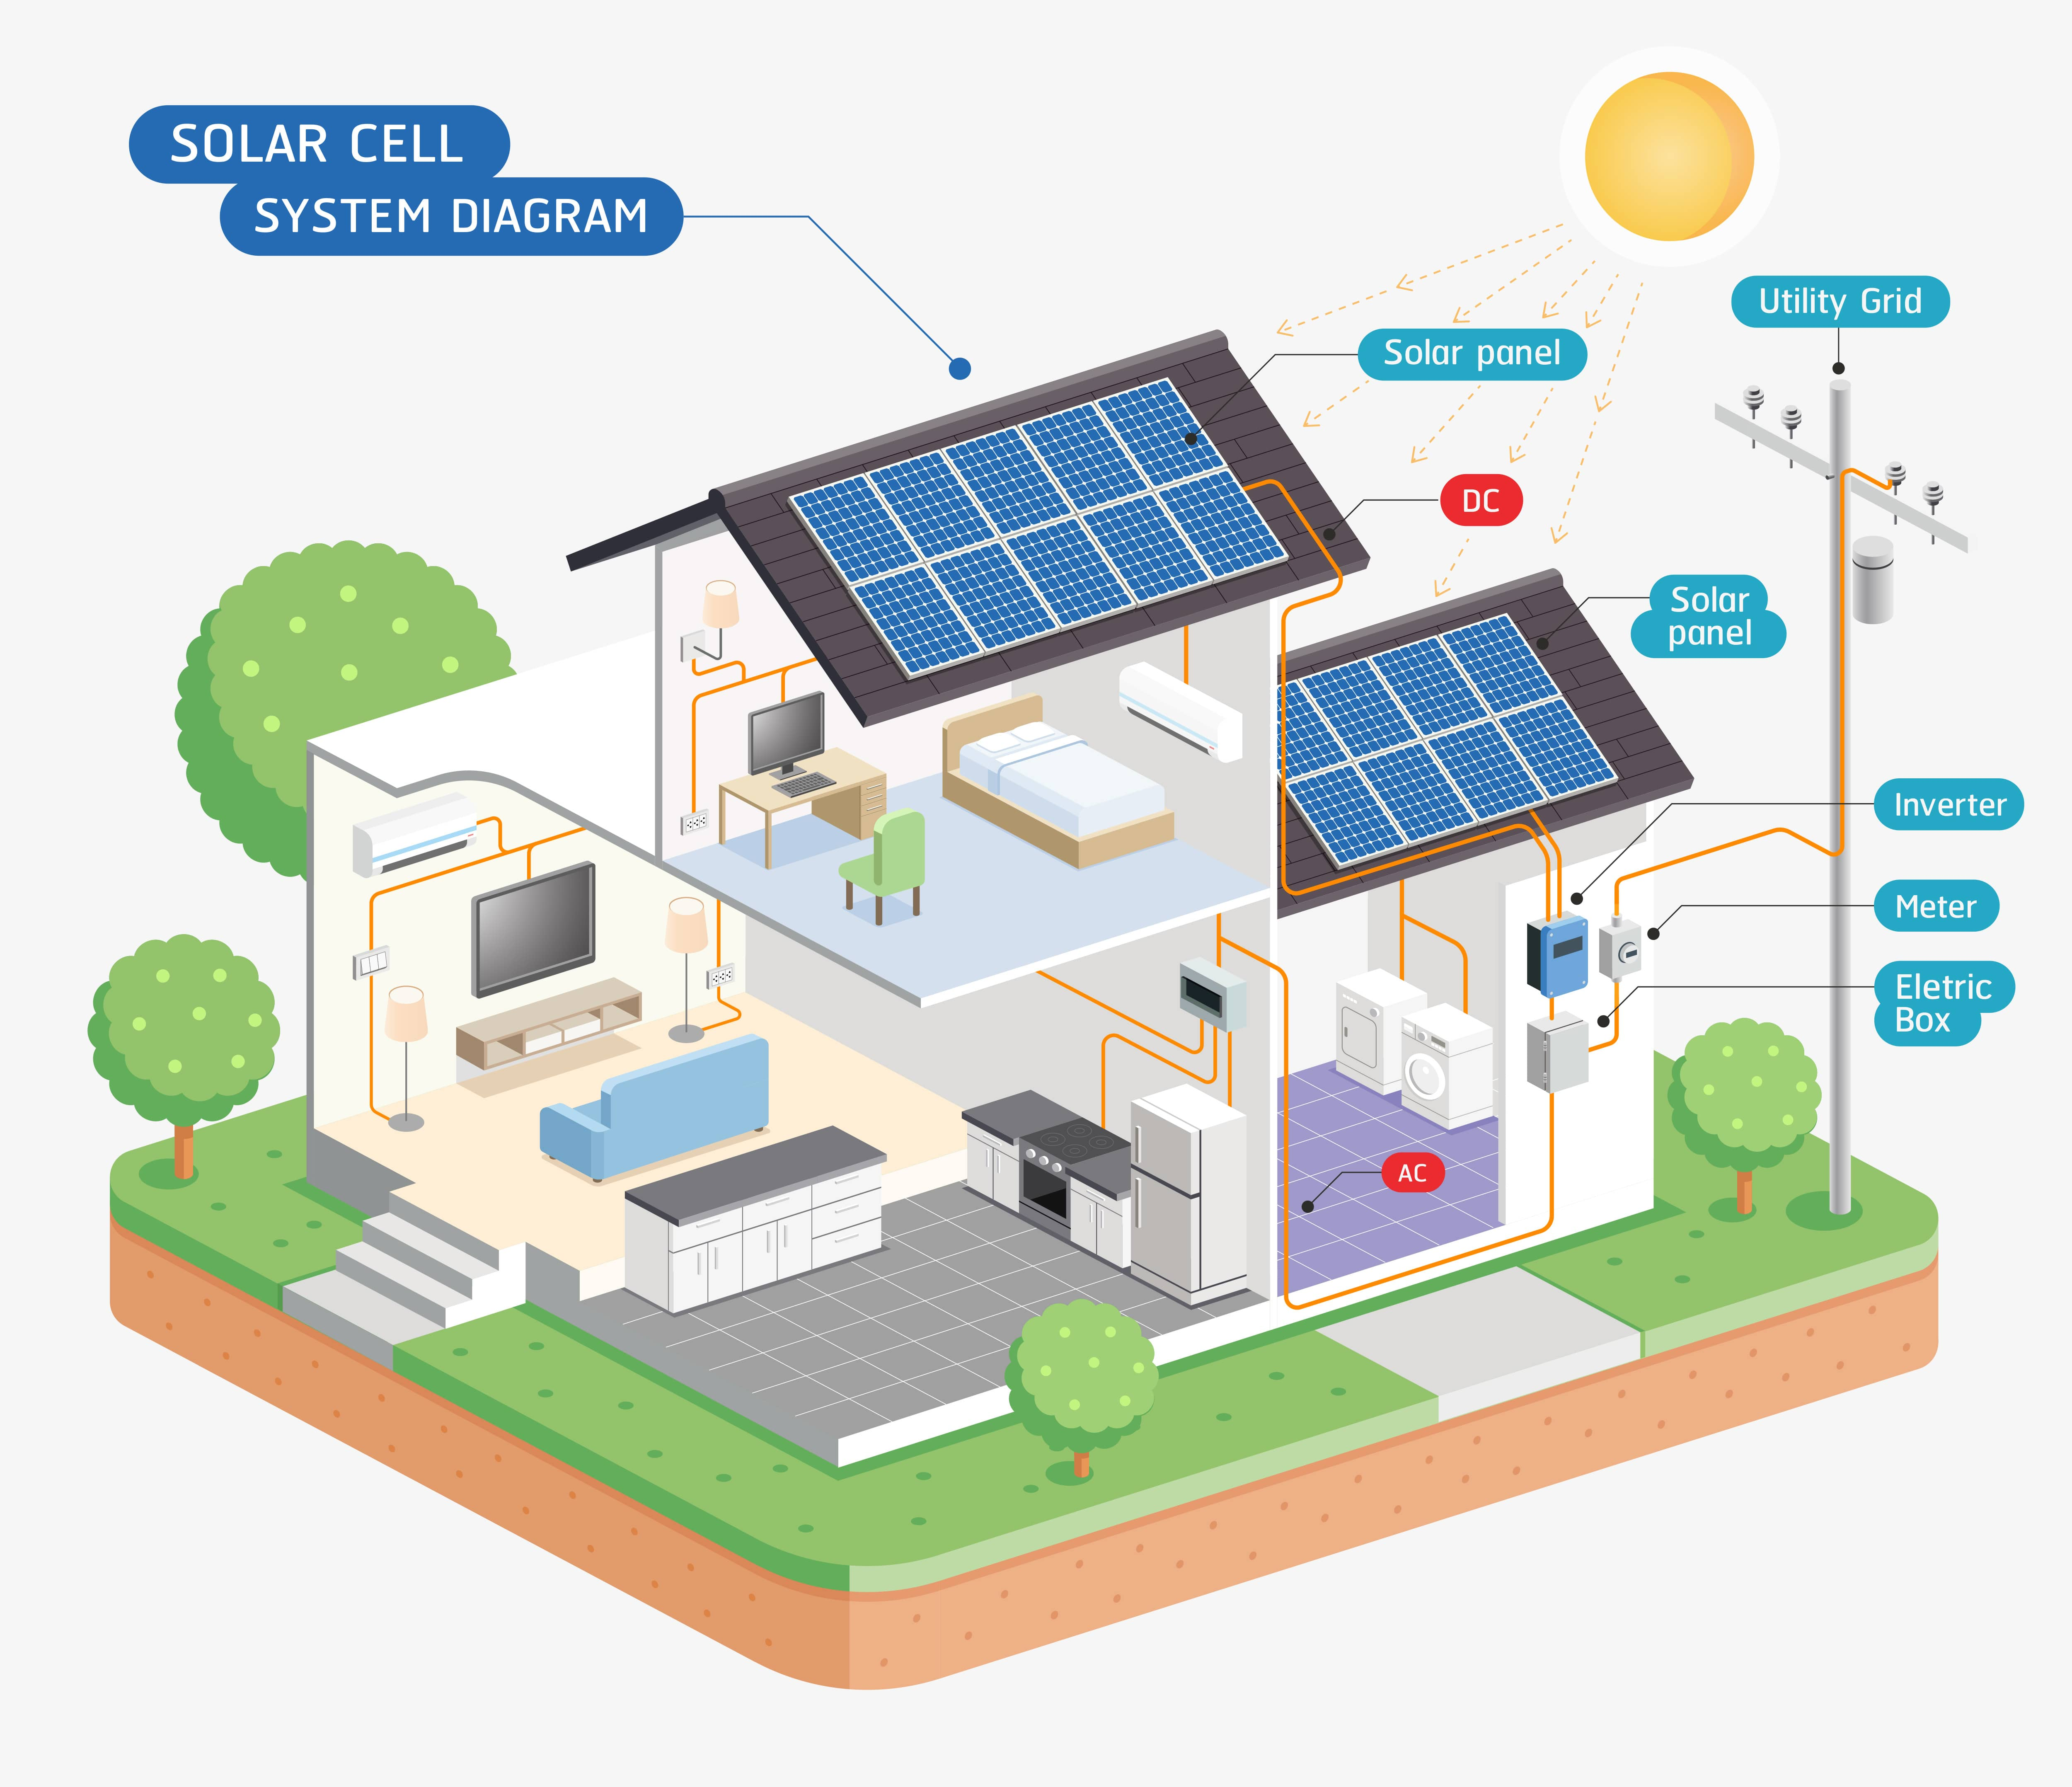 Keen to see how solar power works